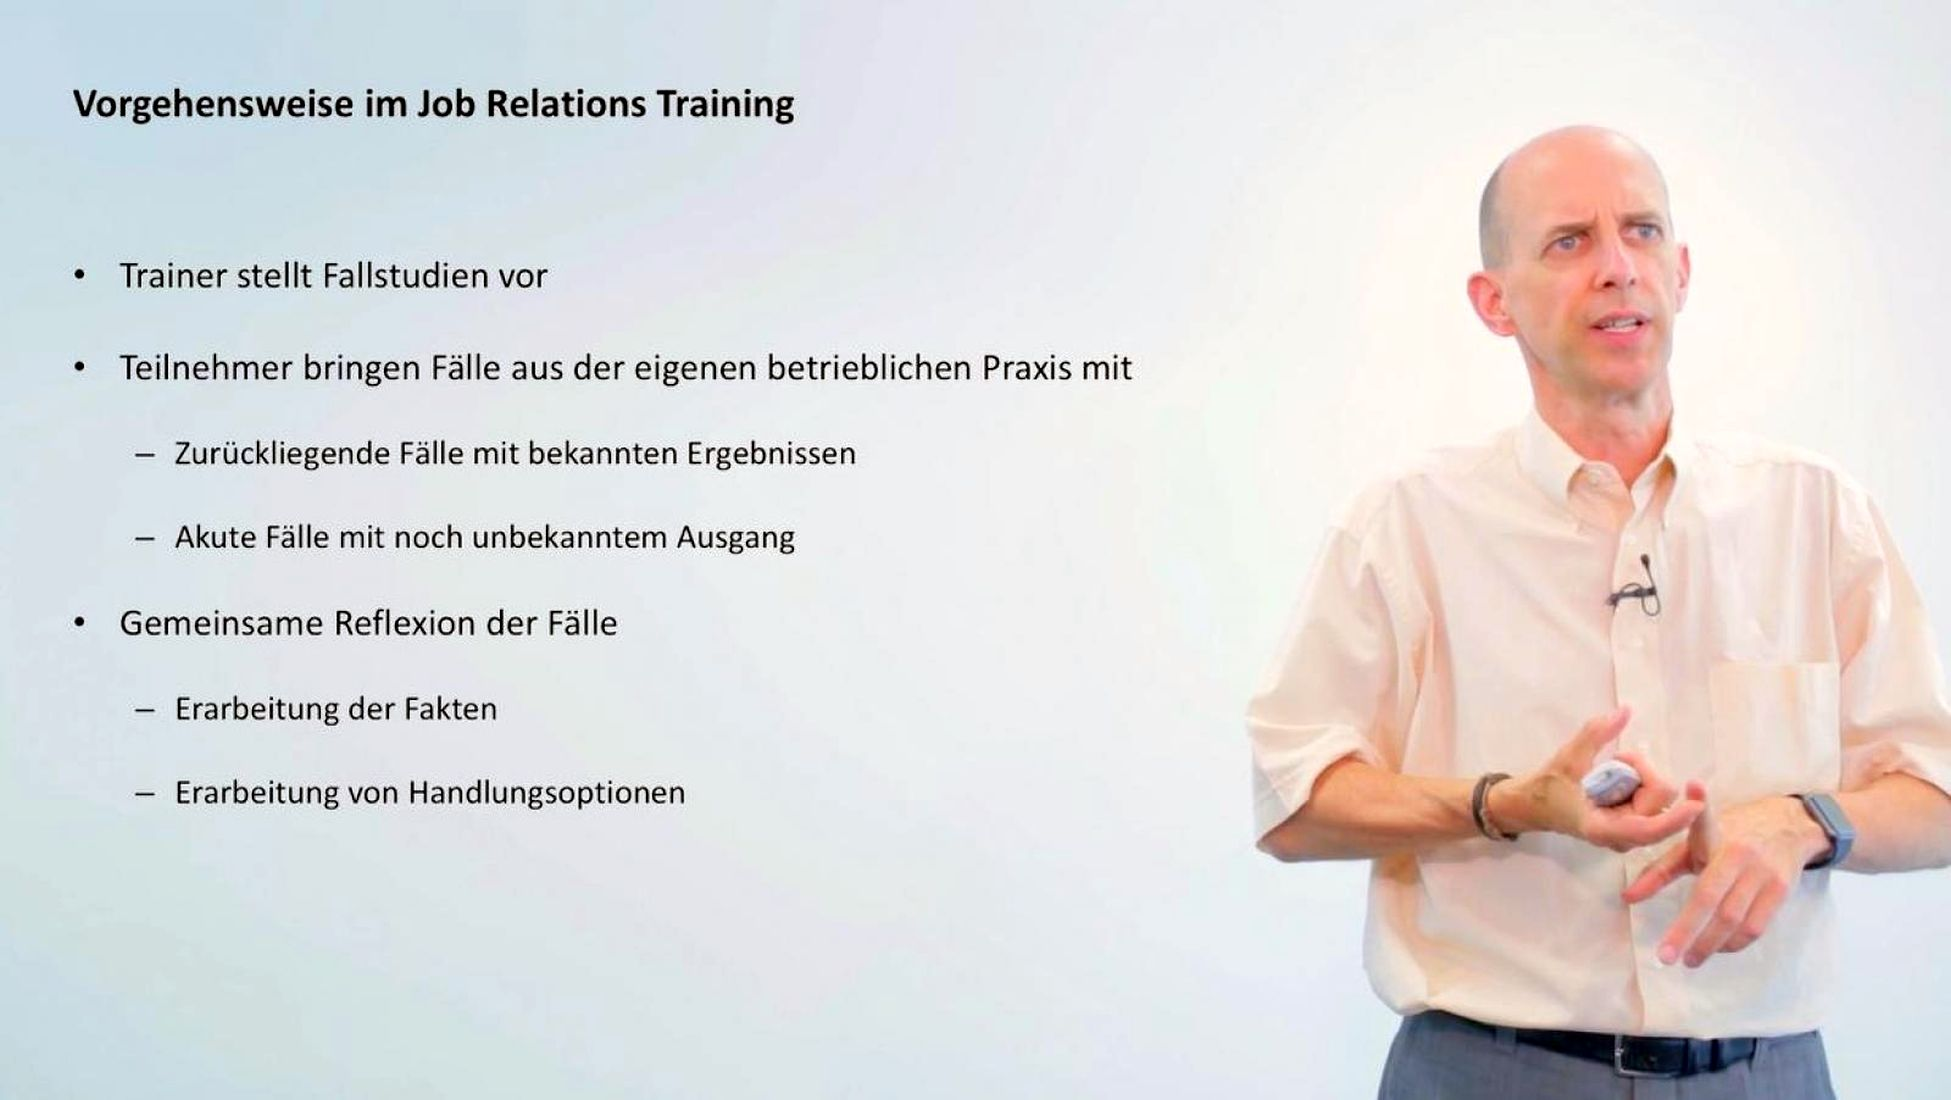 Modul 7: Job Relations Training